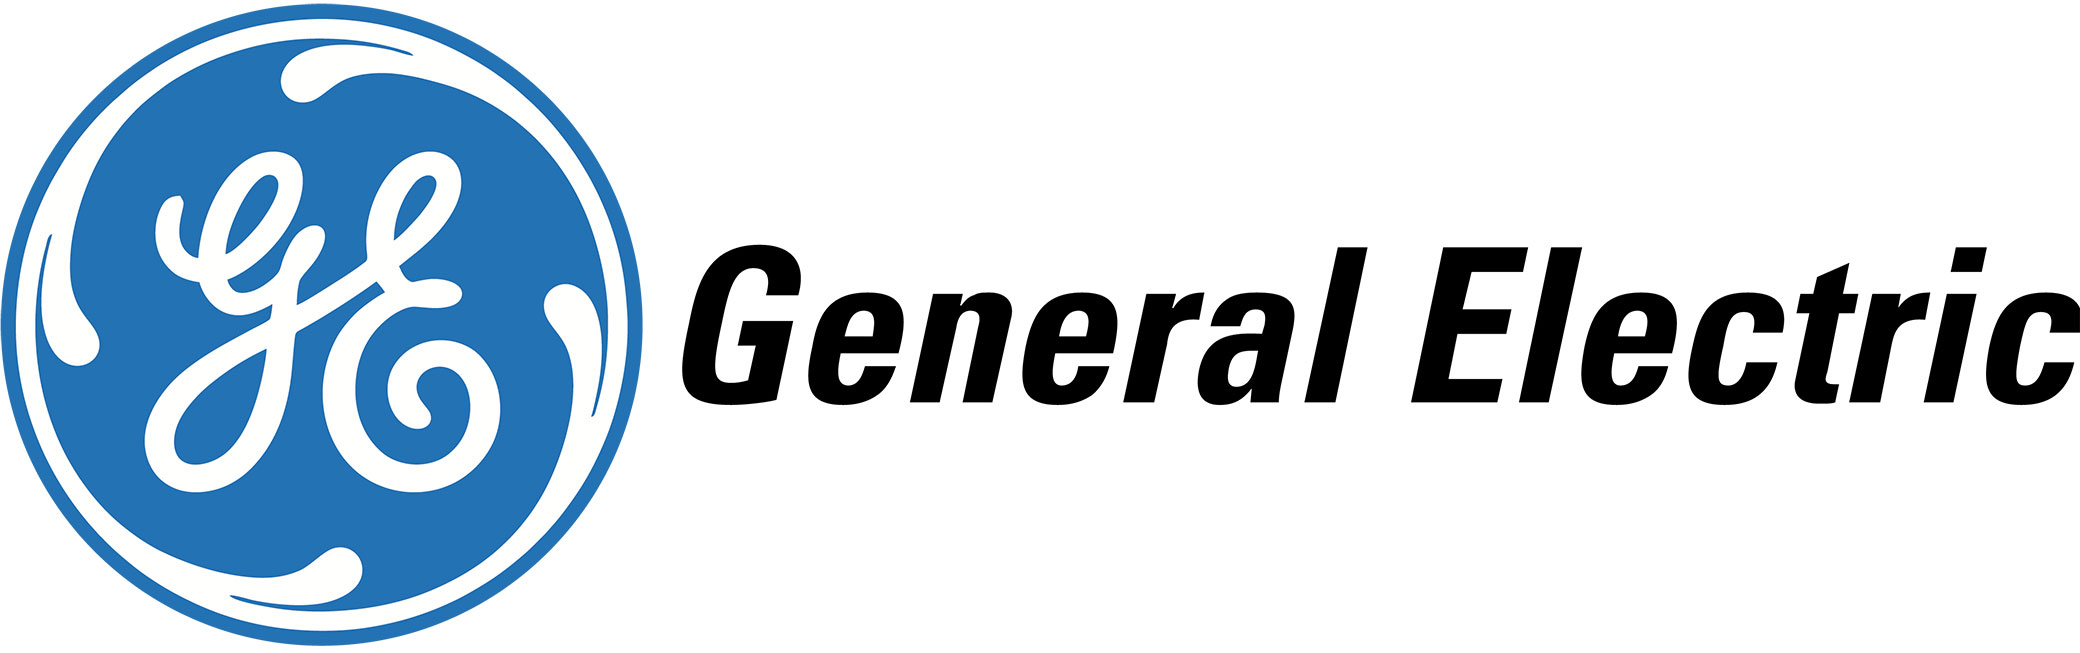 General Electric | Appliance Category | Four Brothers Appliances